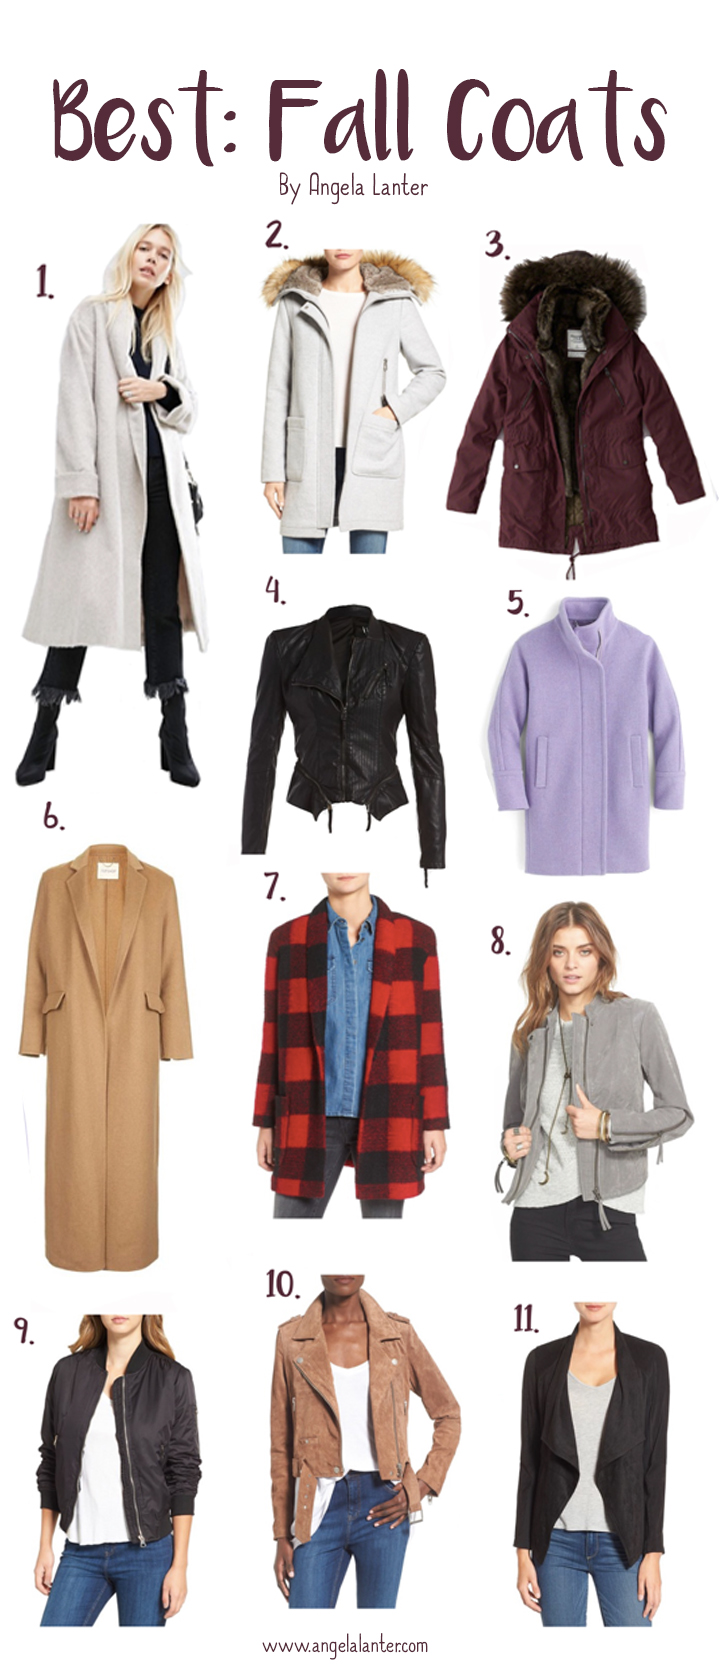 The most beautiful coats for Fall - by Angela Lanter - Hello Gorgeous